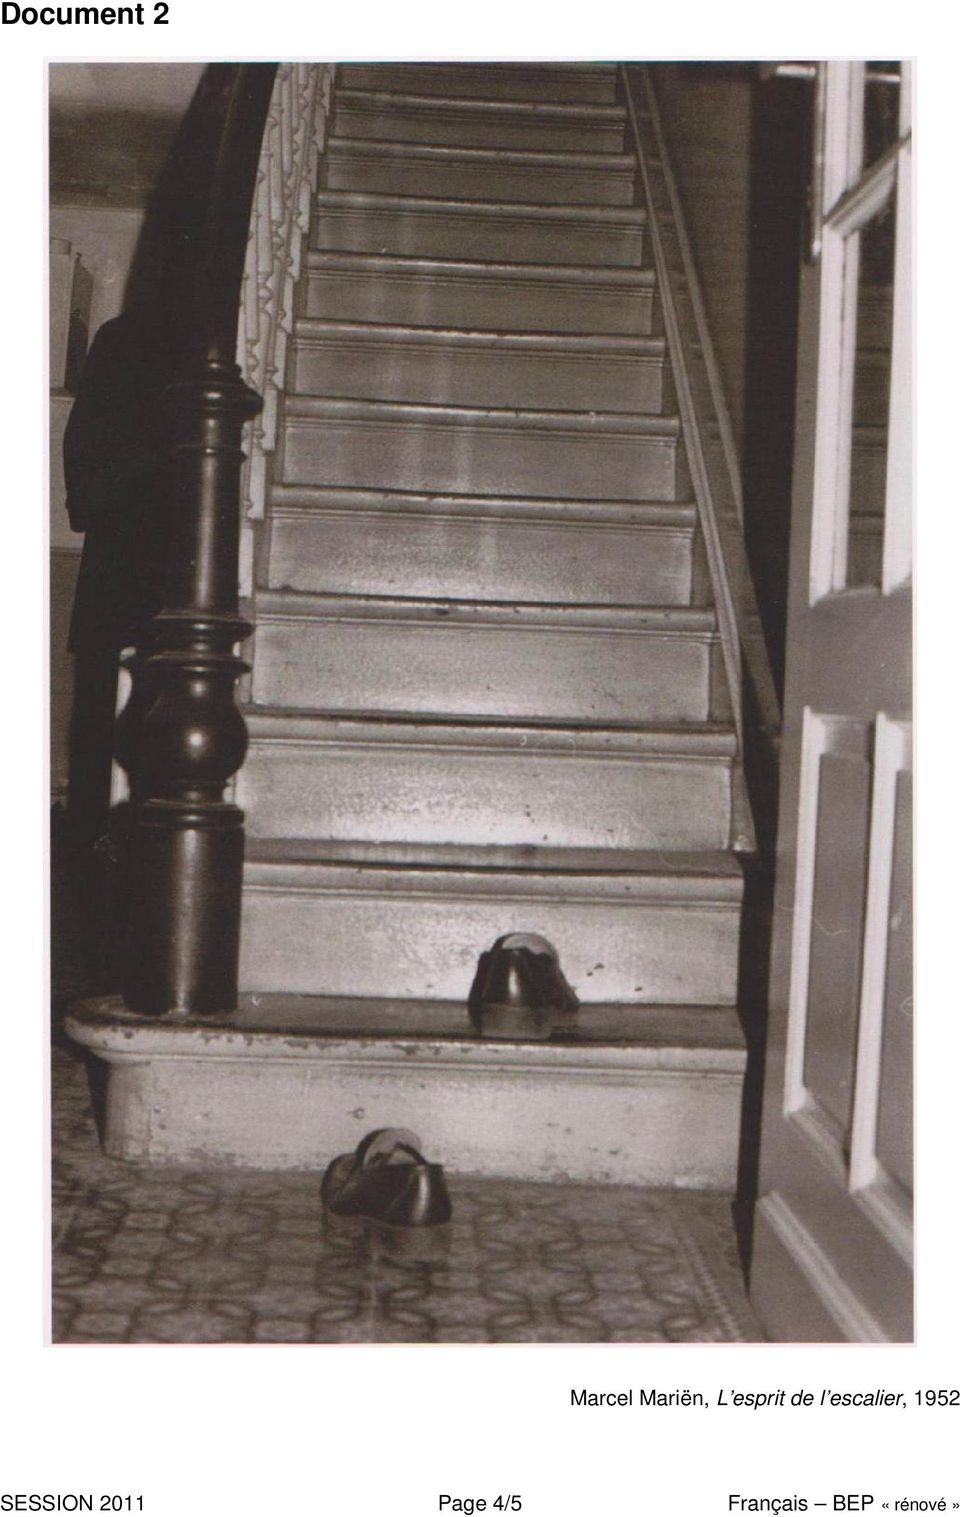 escalier, 1952 SESSION